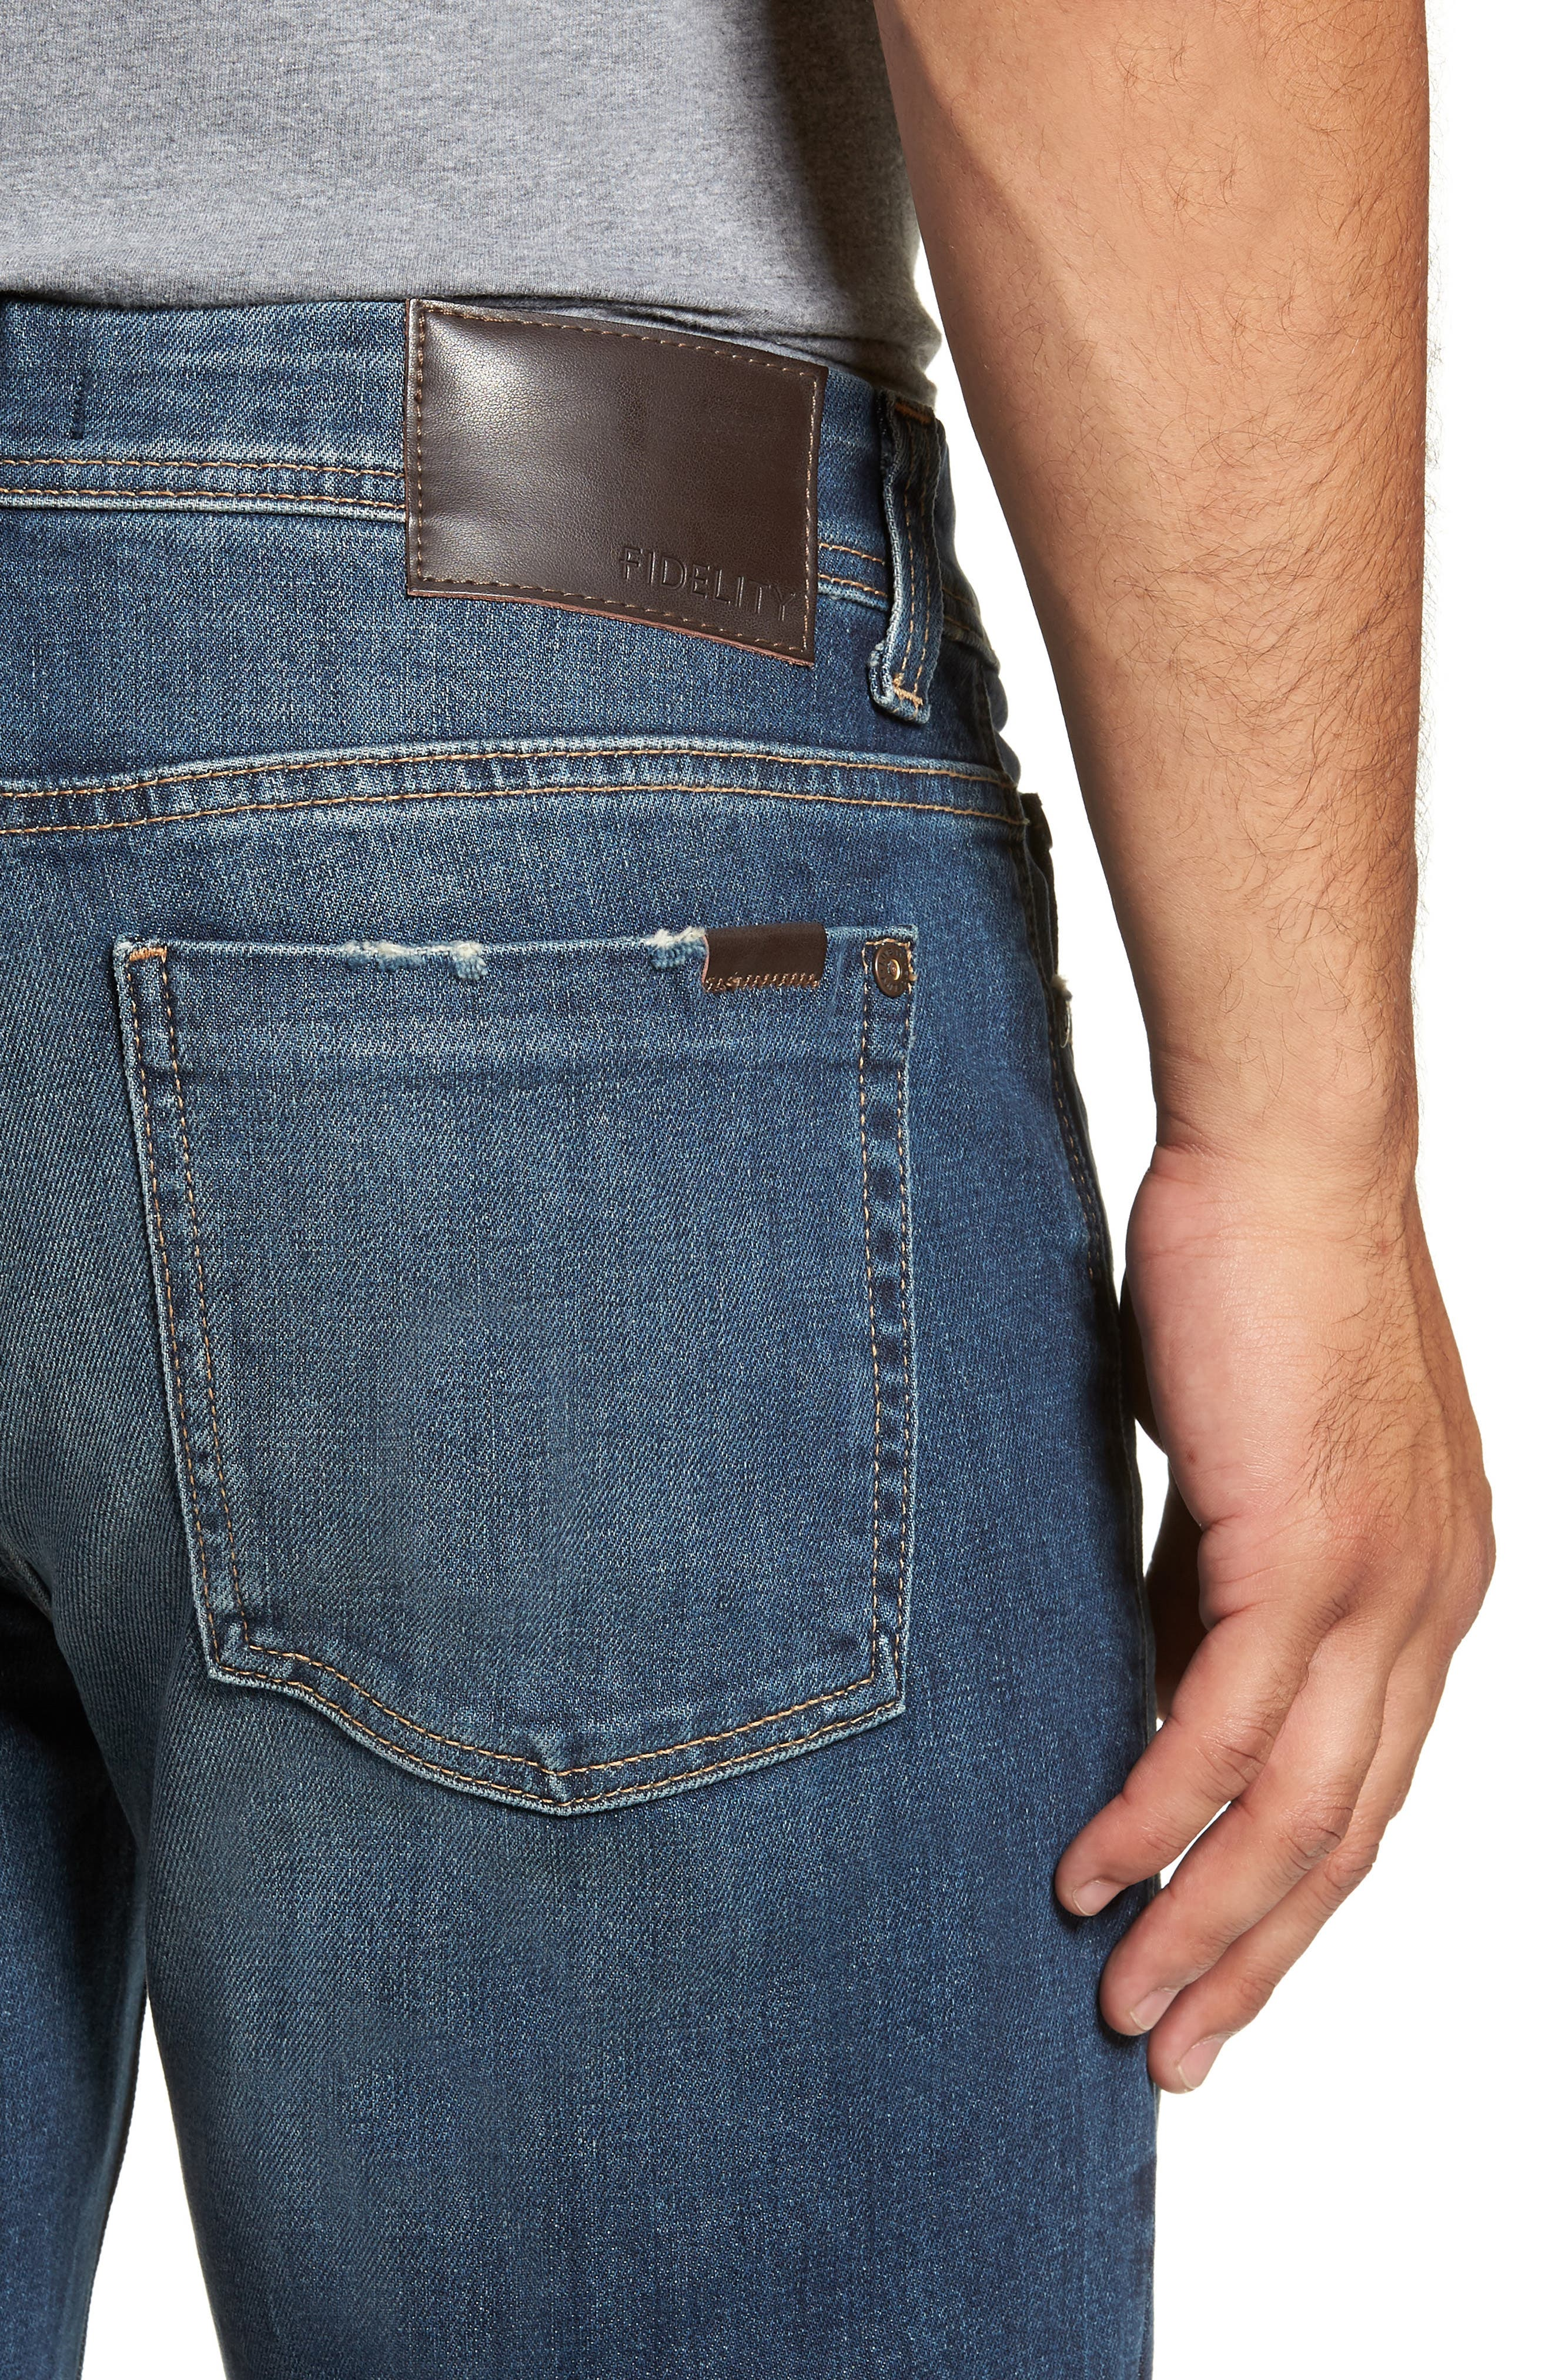 50-11 Relaxed Fit Jeans,                             Alternate thumbnail 4, color,                             GTO VINTAGE